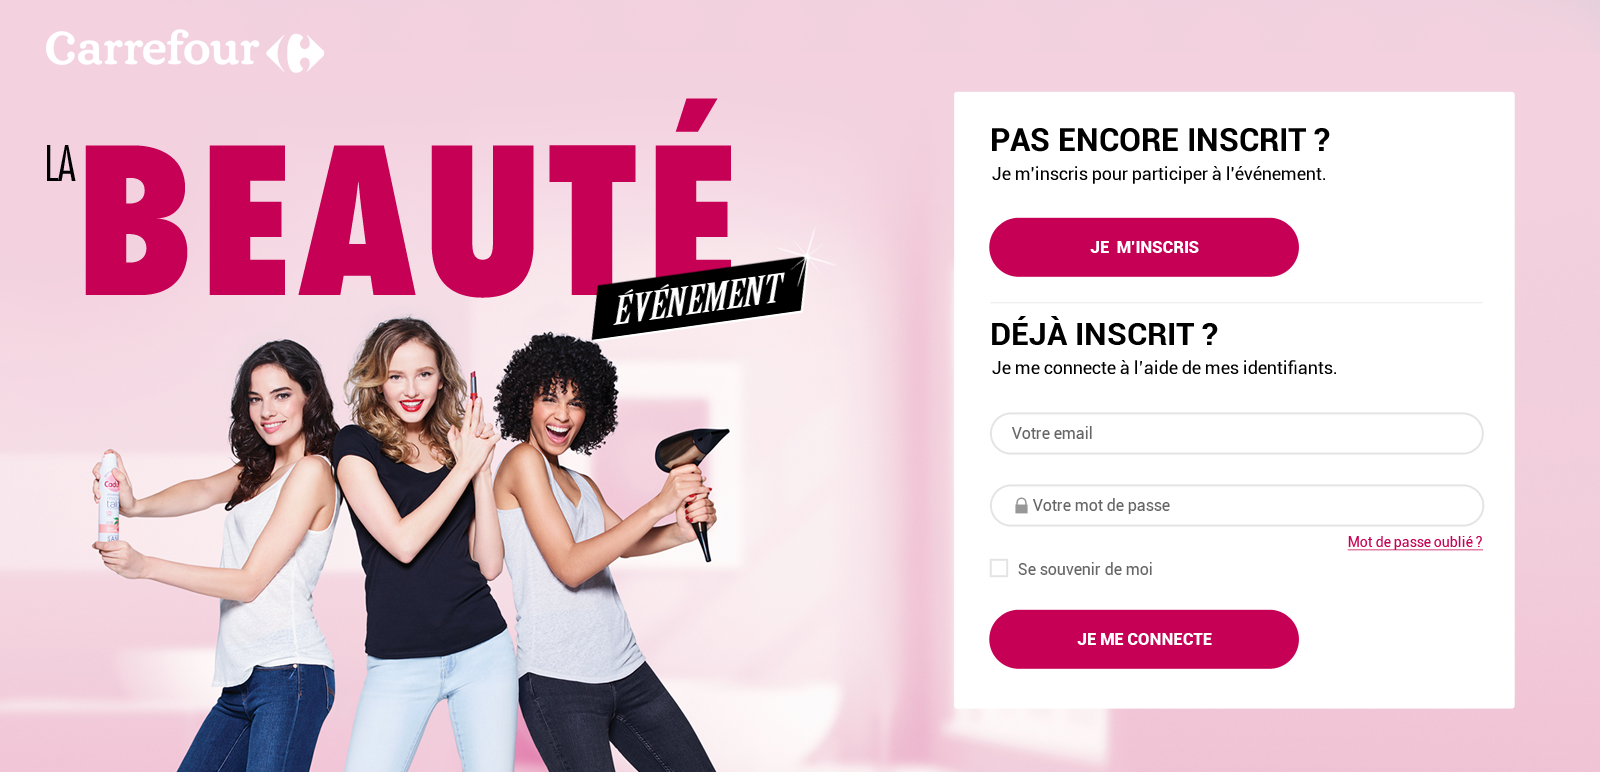 Hyper Carrefour homepage